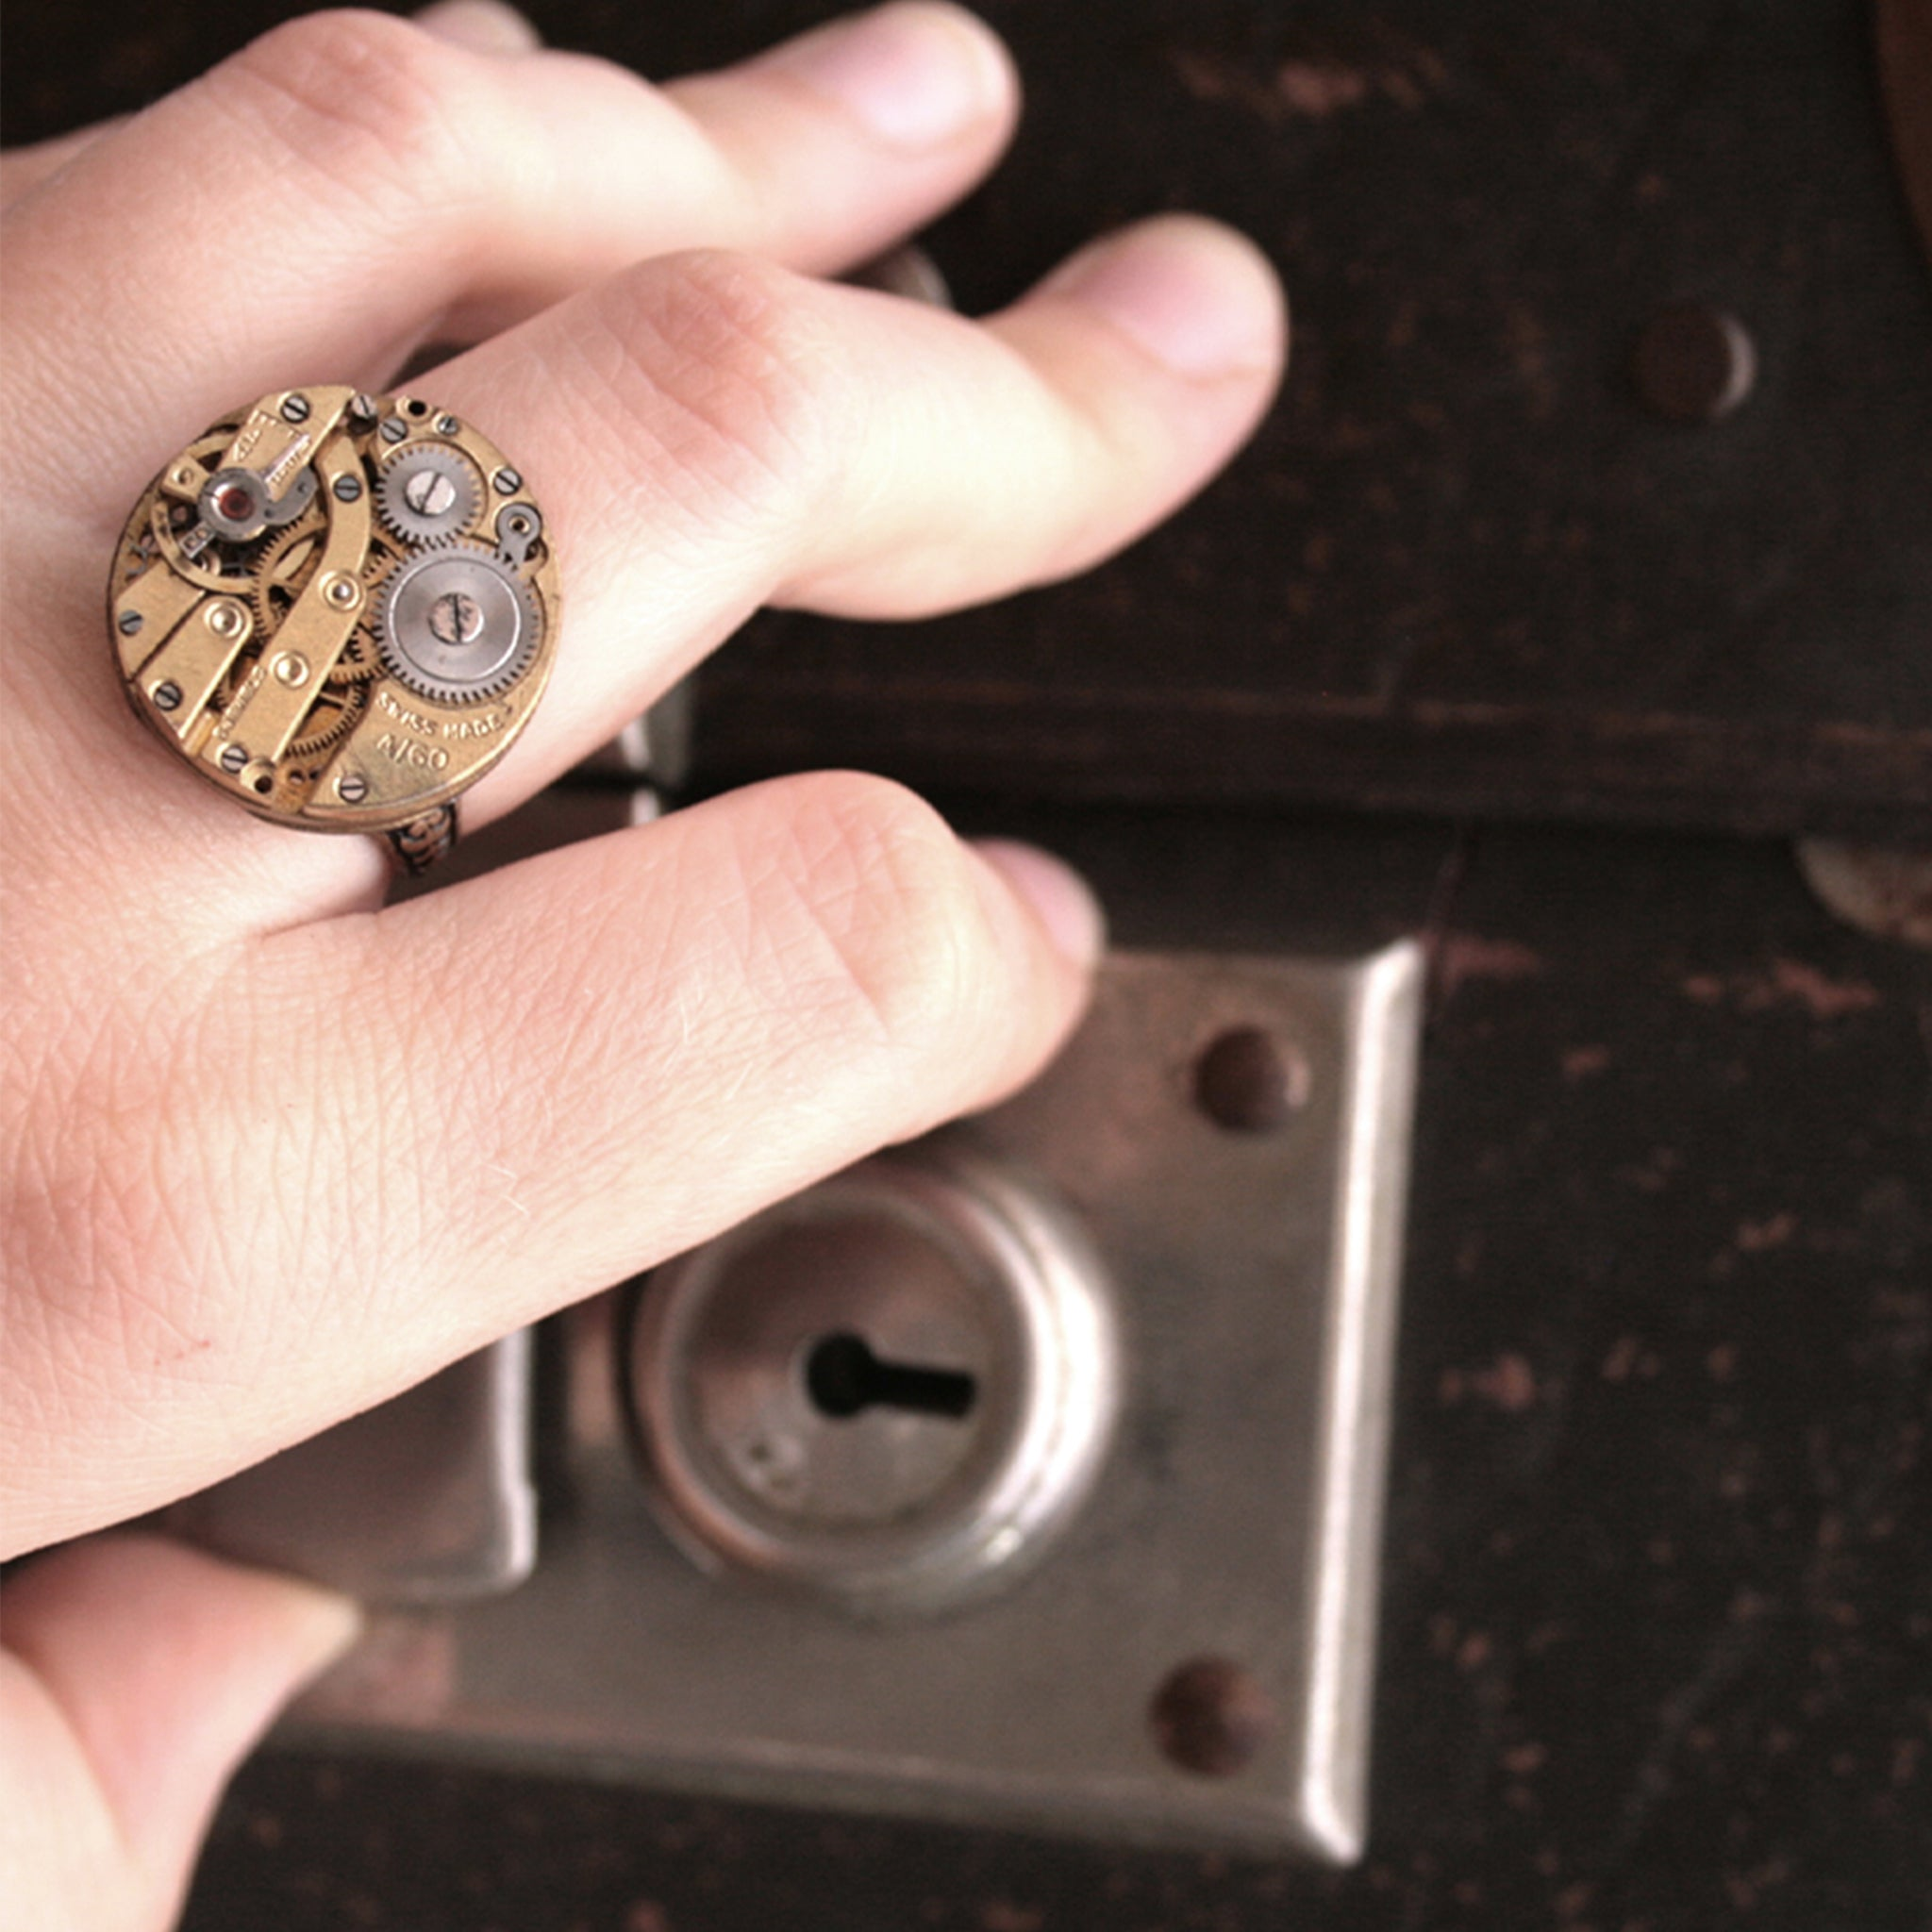 Golden Gothic Signet Ring on hand